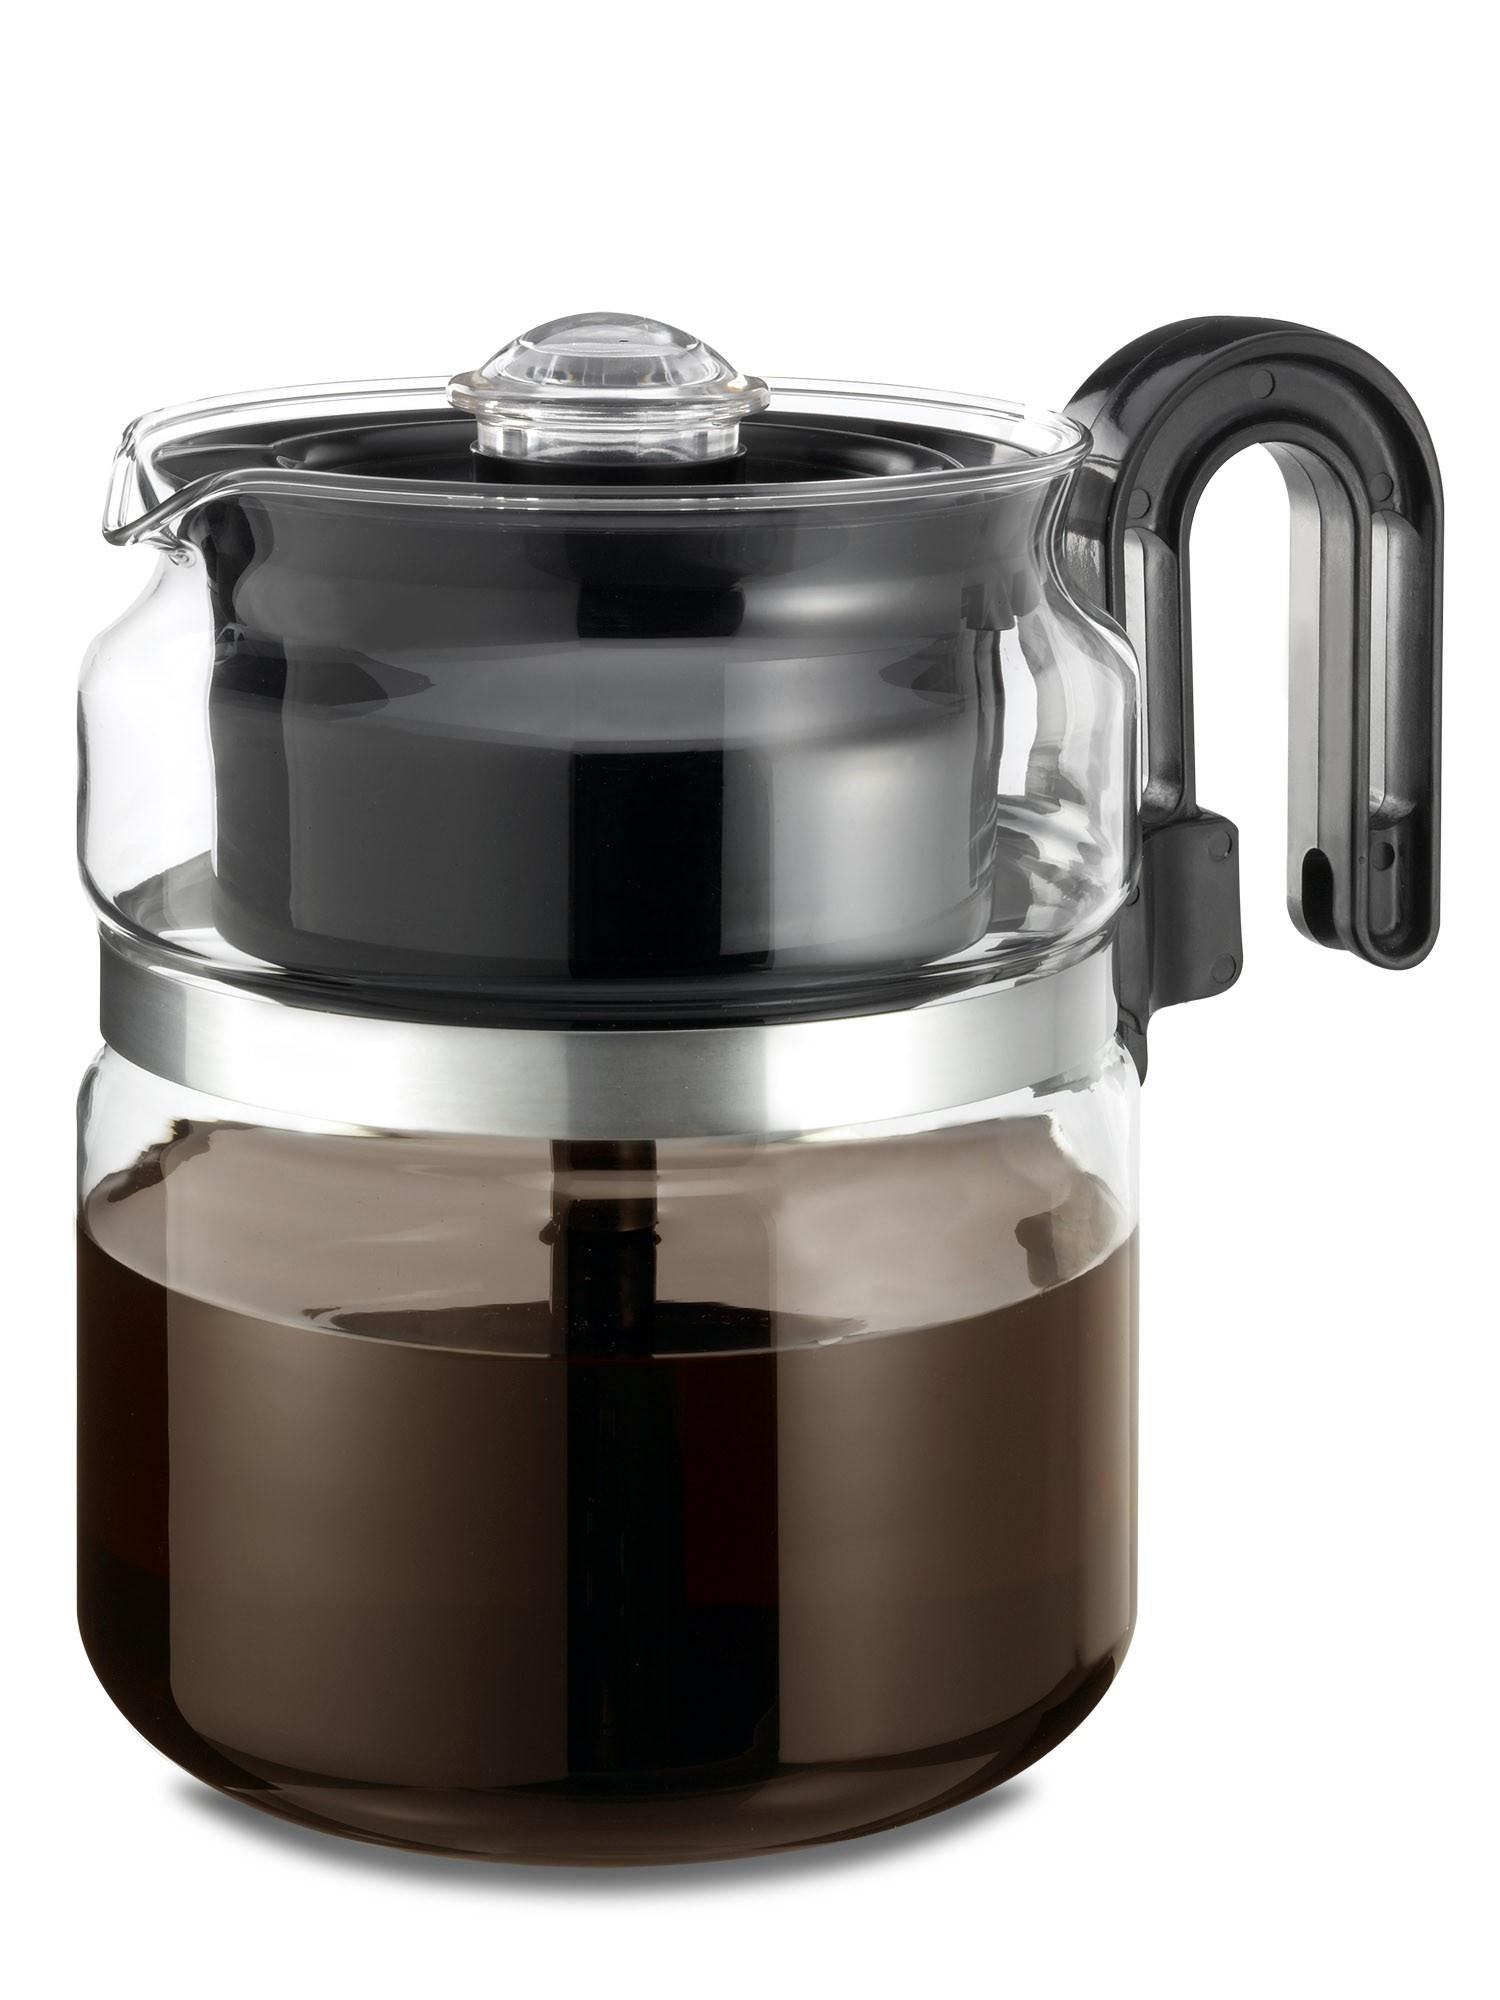 Wee's Beyond 7548 Stove Top Percolator, 8 Cups, Clear/Glass